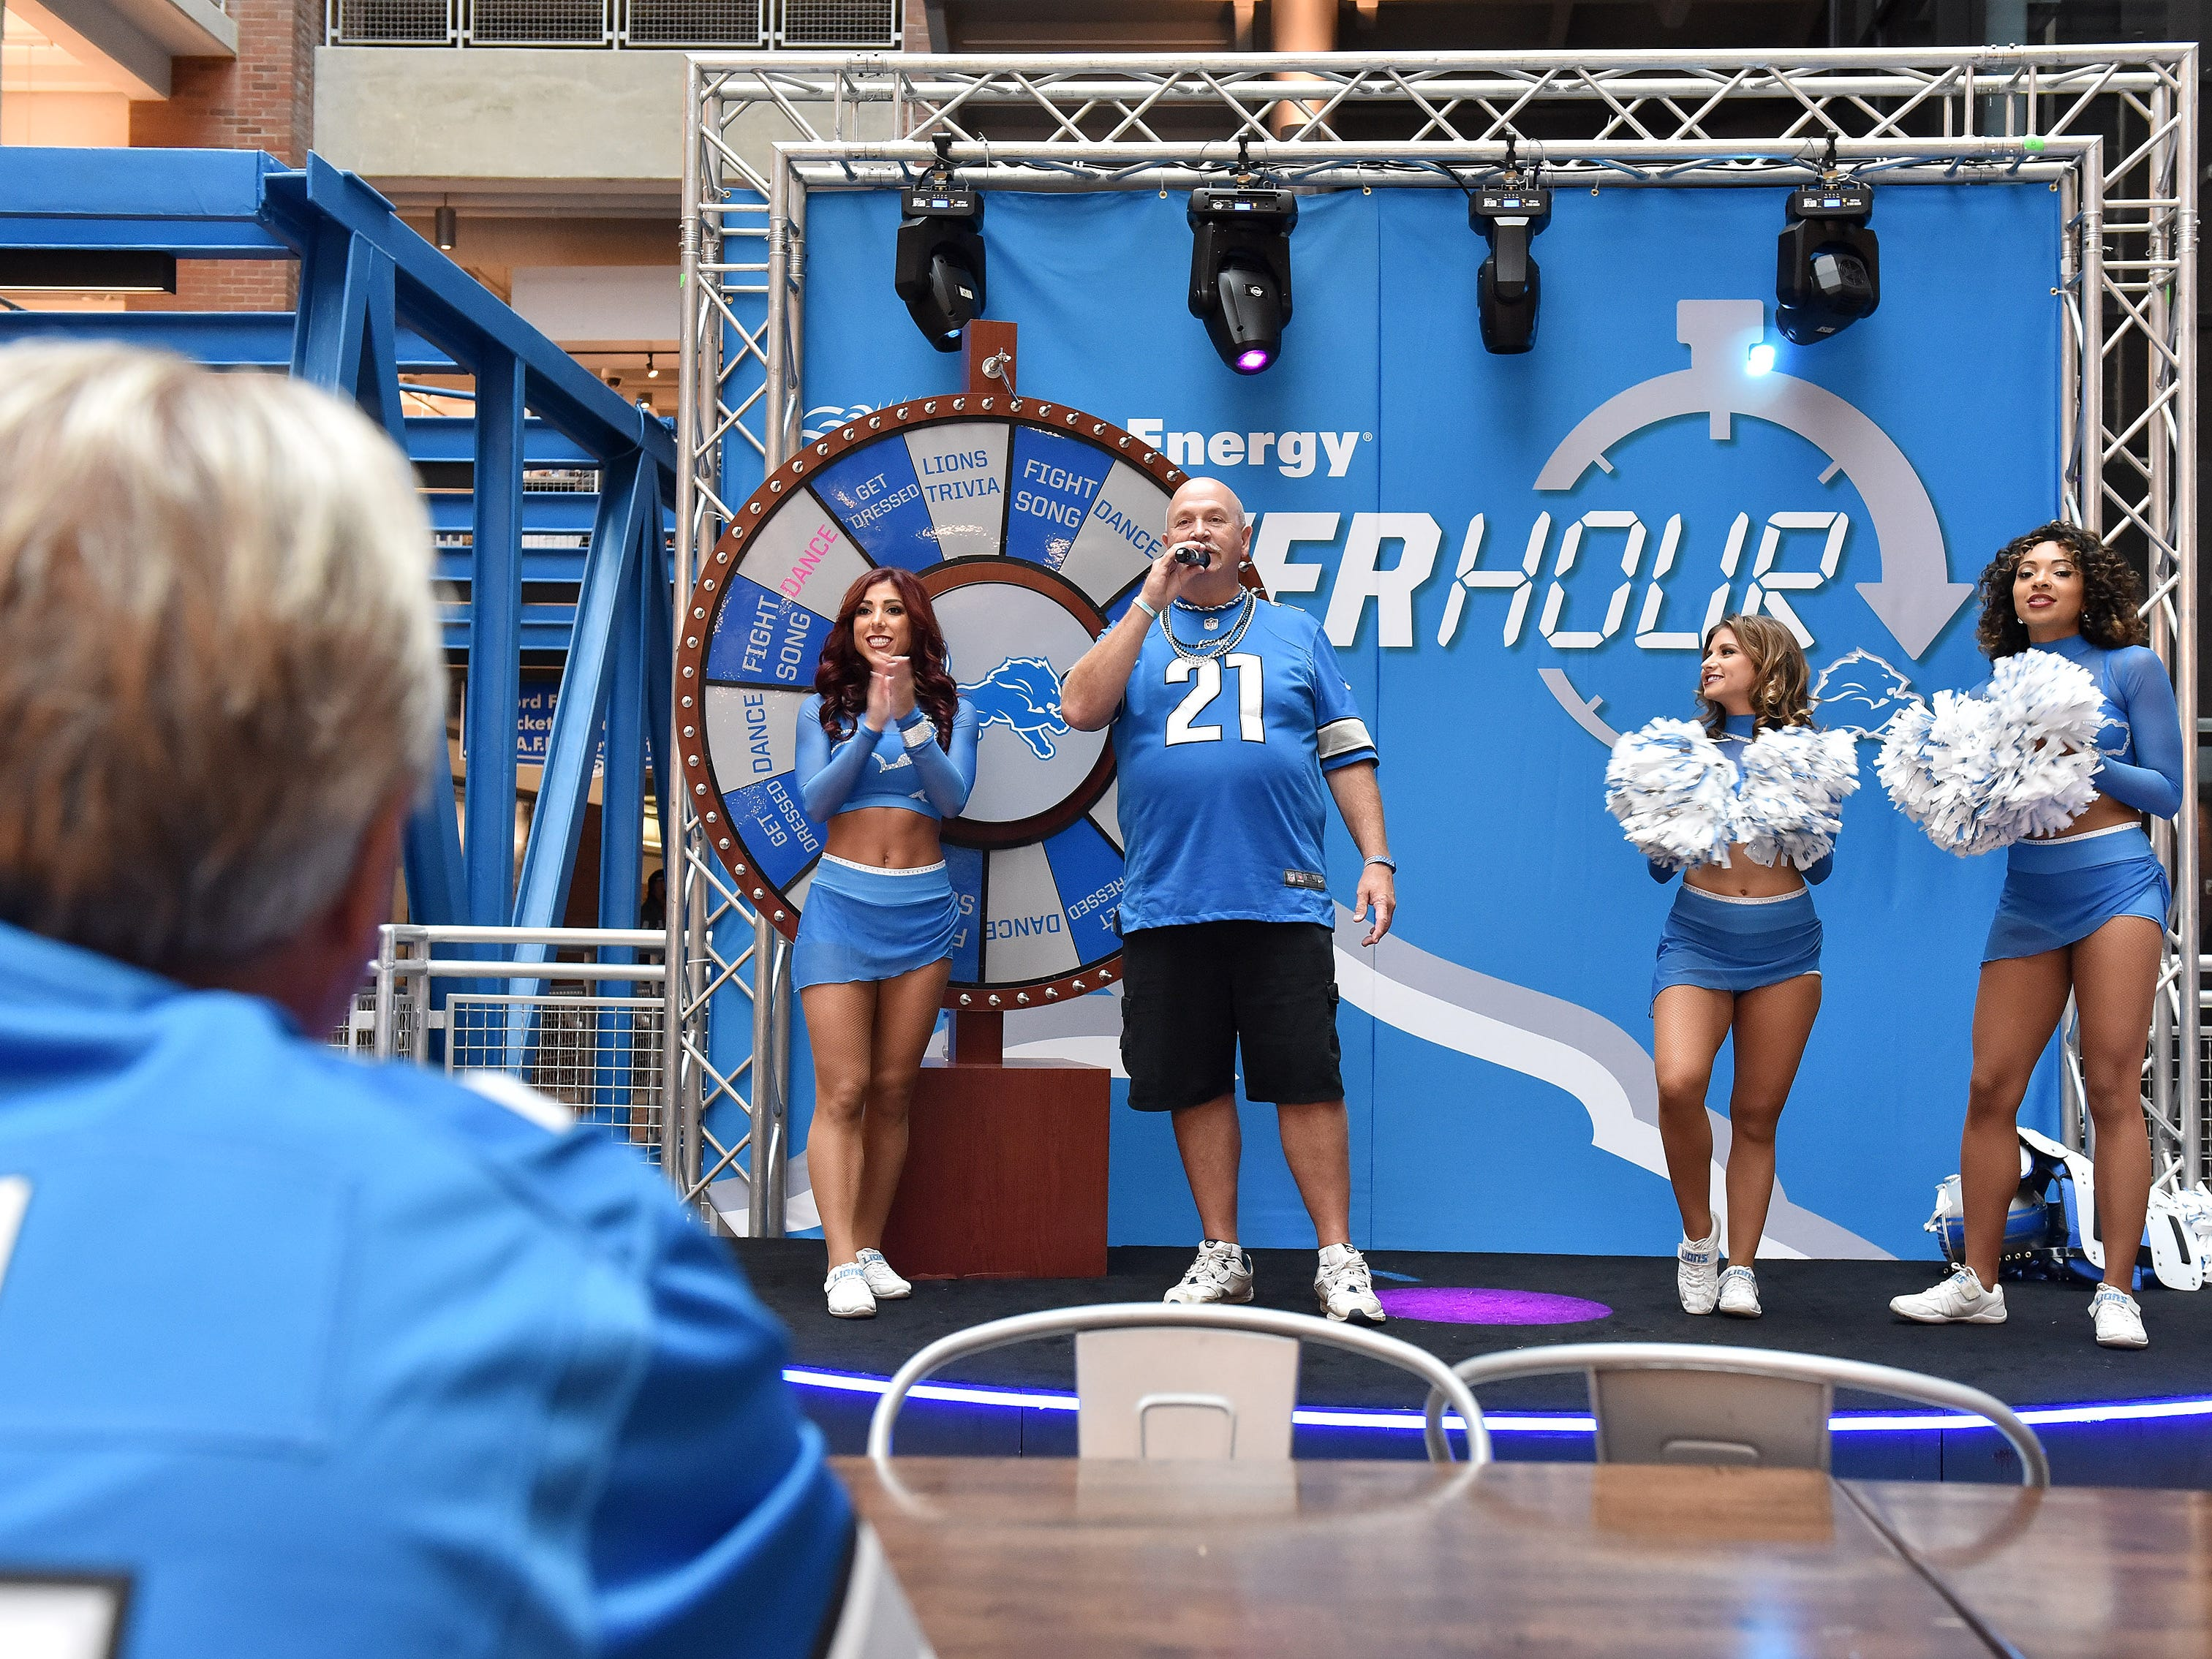 Joe Cichewicz of Waterford sings the Lions fight song during fan activities with the Lions cheerleaders before the game.